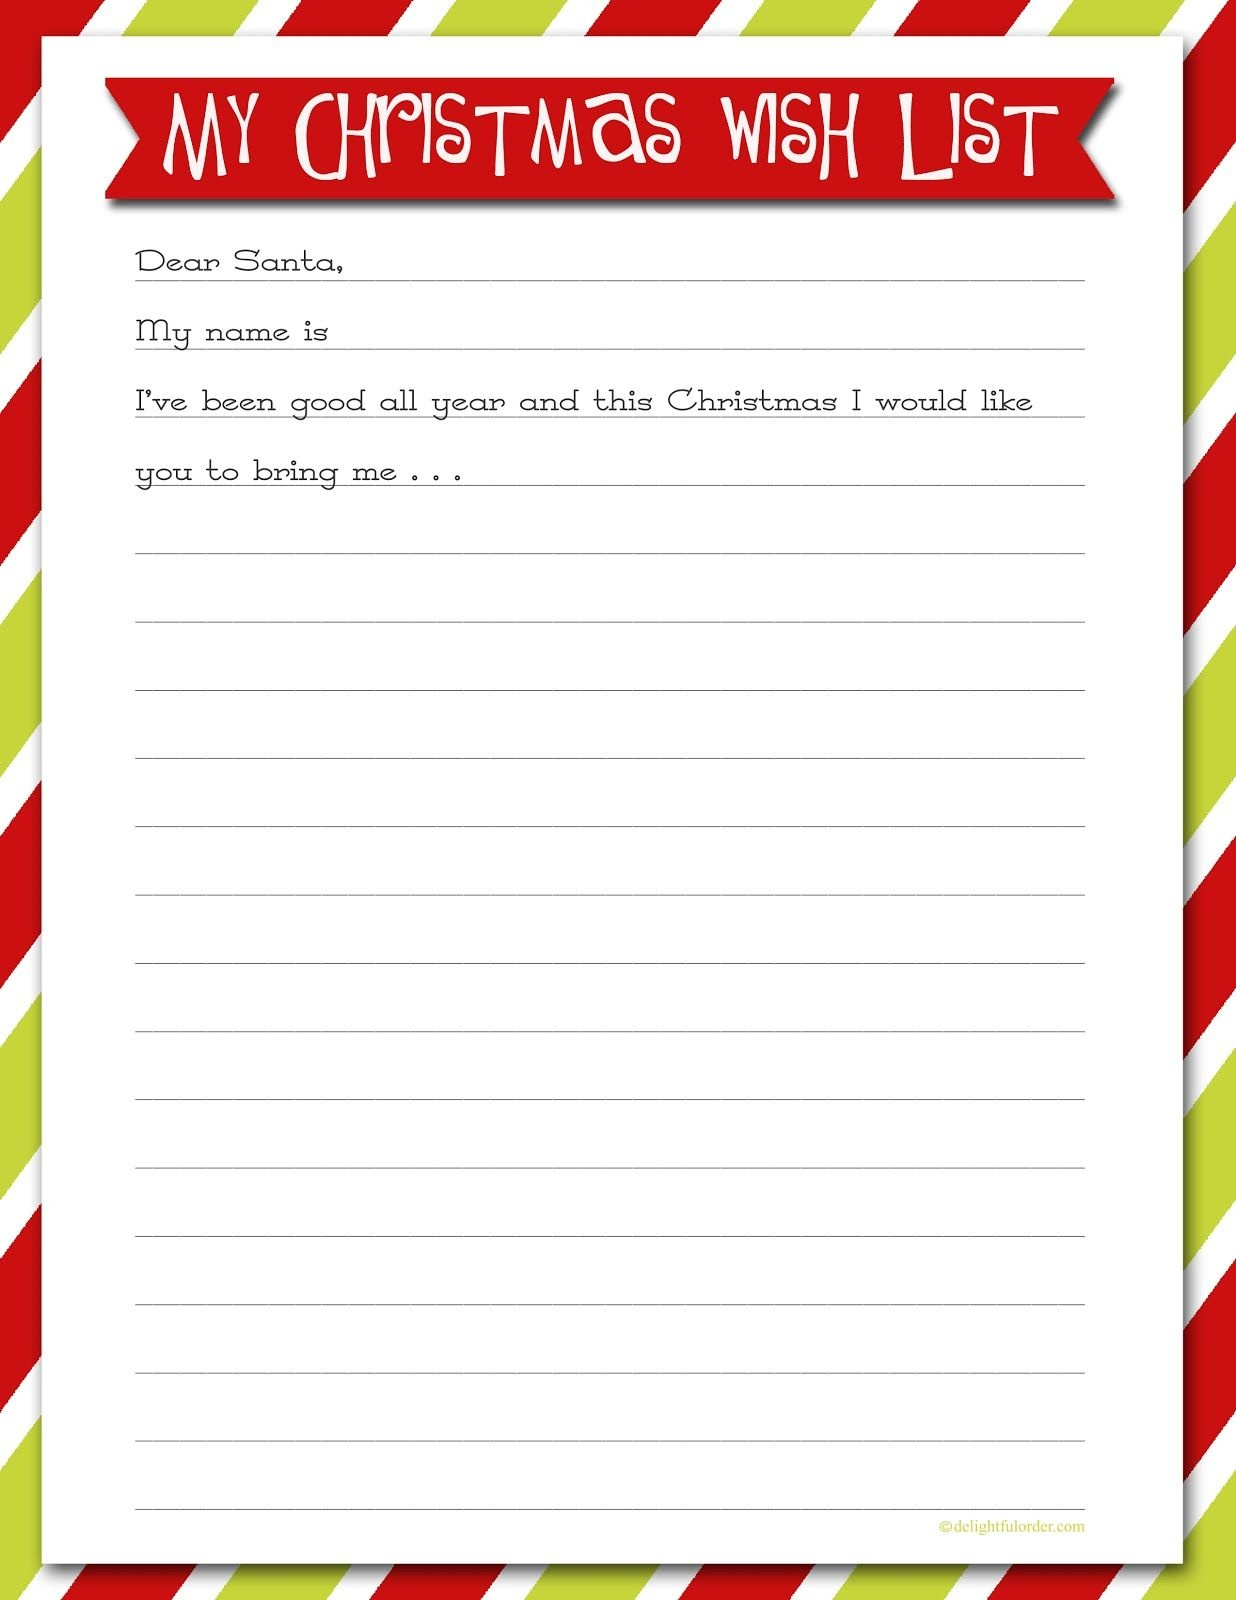 Wish List For Christmas | Simply Click On The Photo Above, Download - Free Printable Christmas List